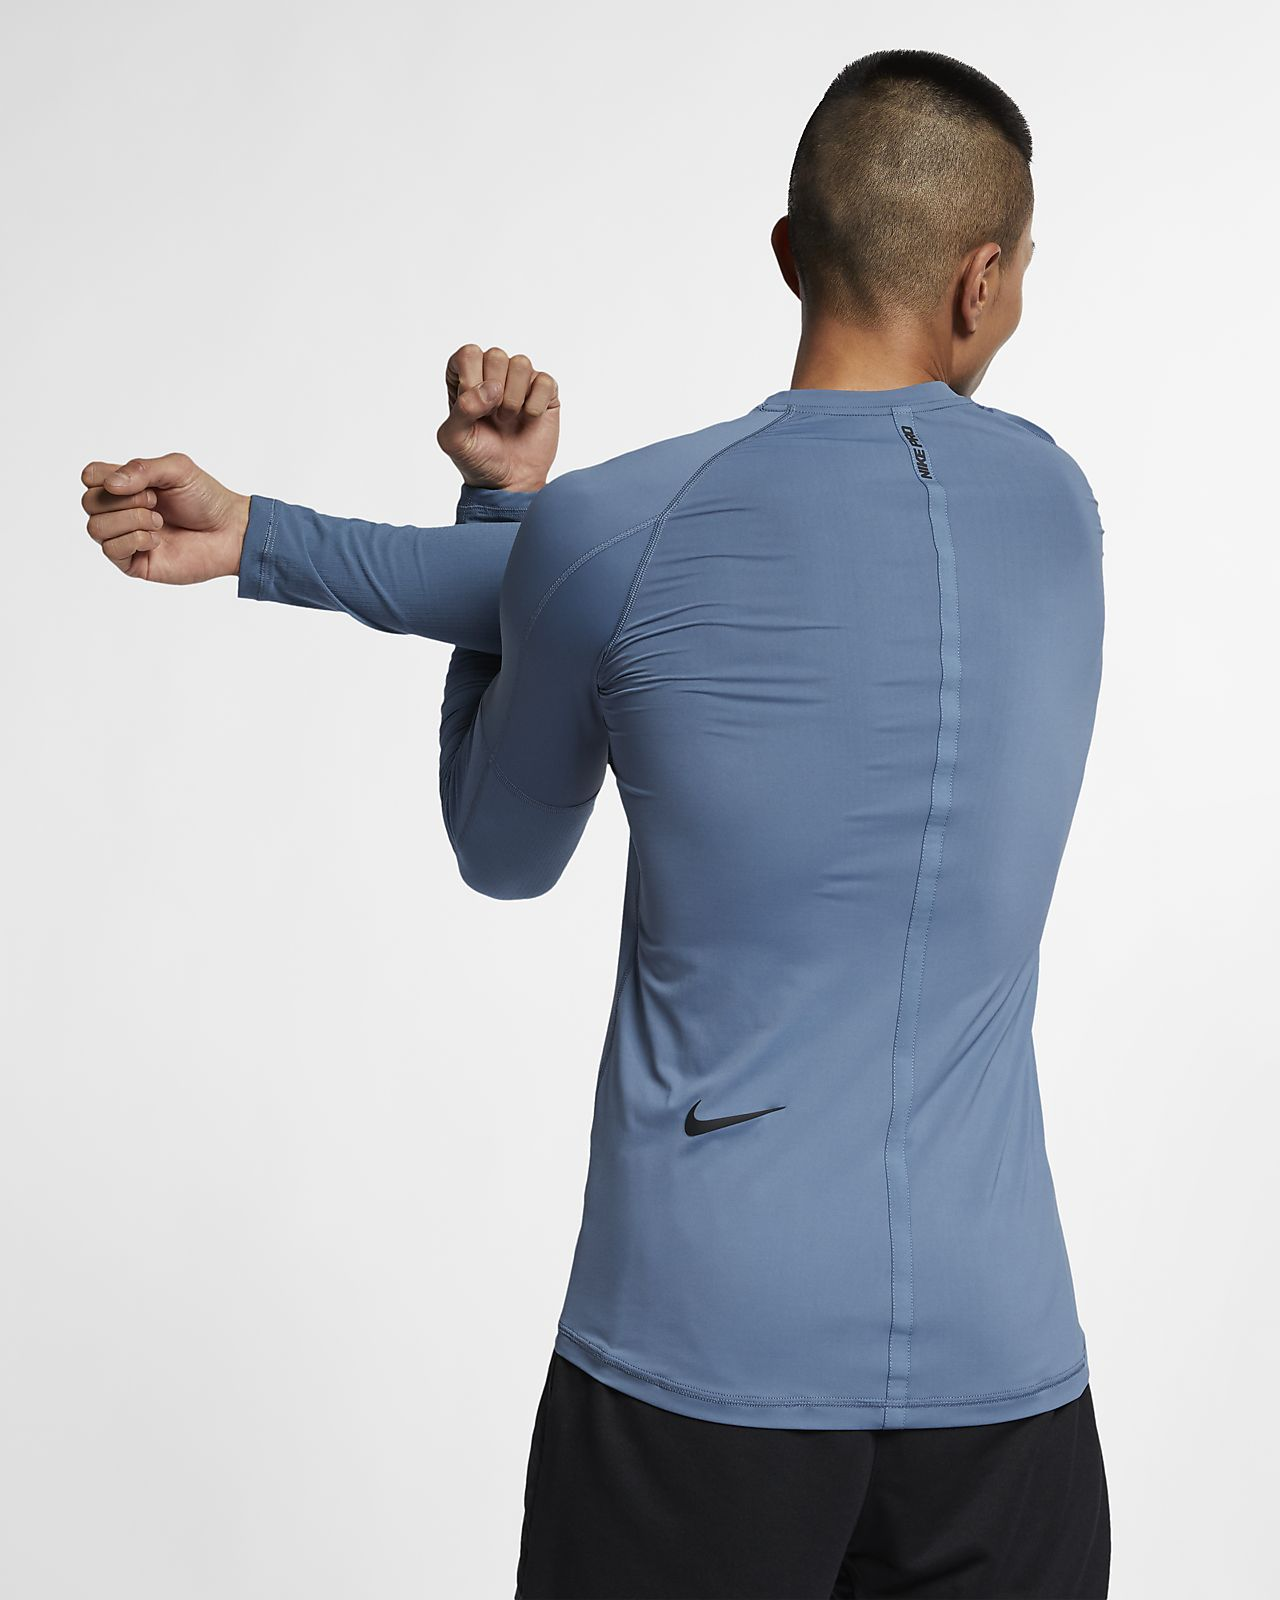 dbf4ec4e Nike Pro Men's Long-Sleeve Top. Nike.com ID